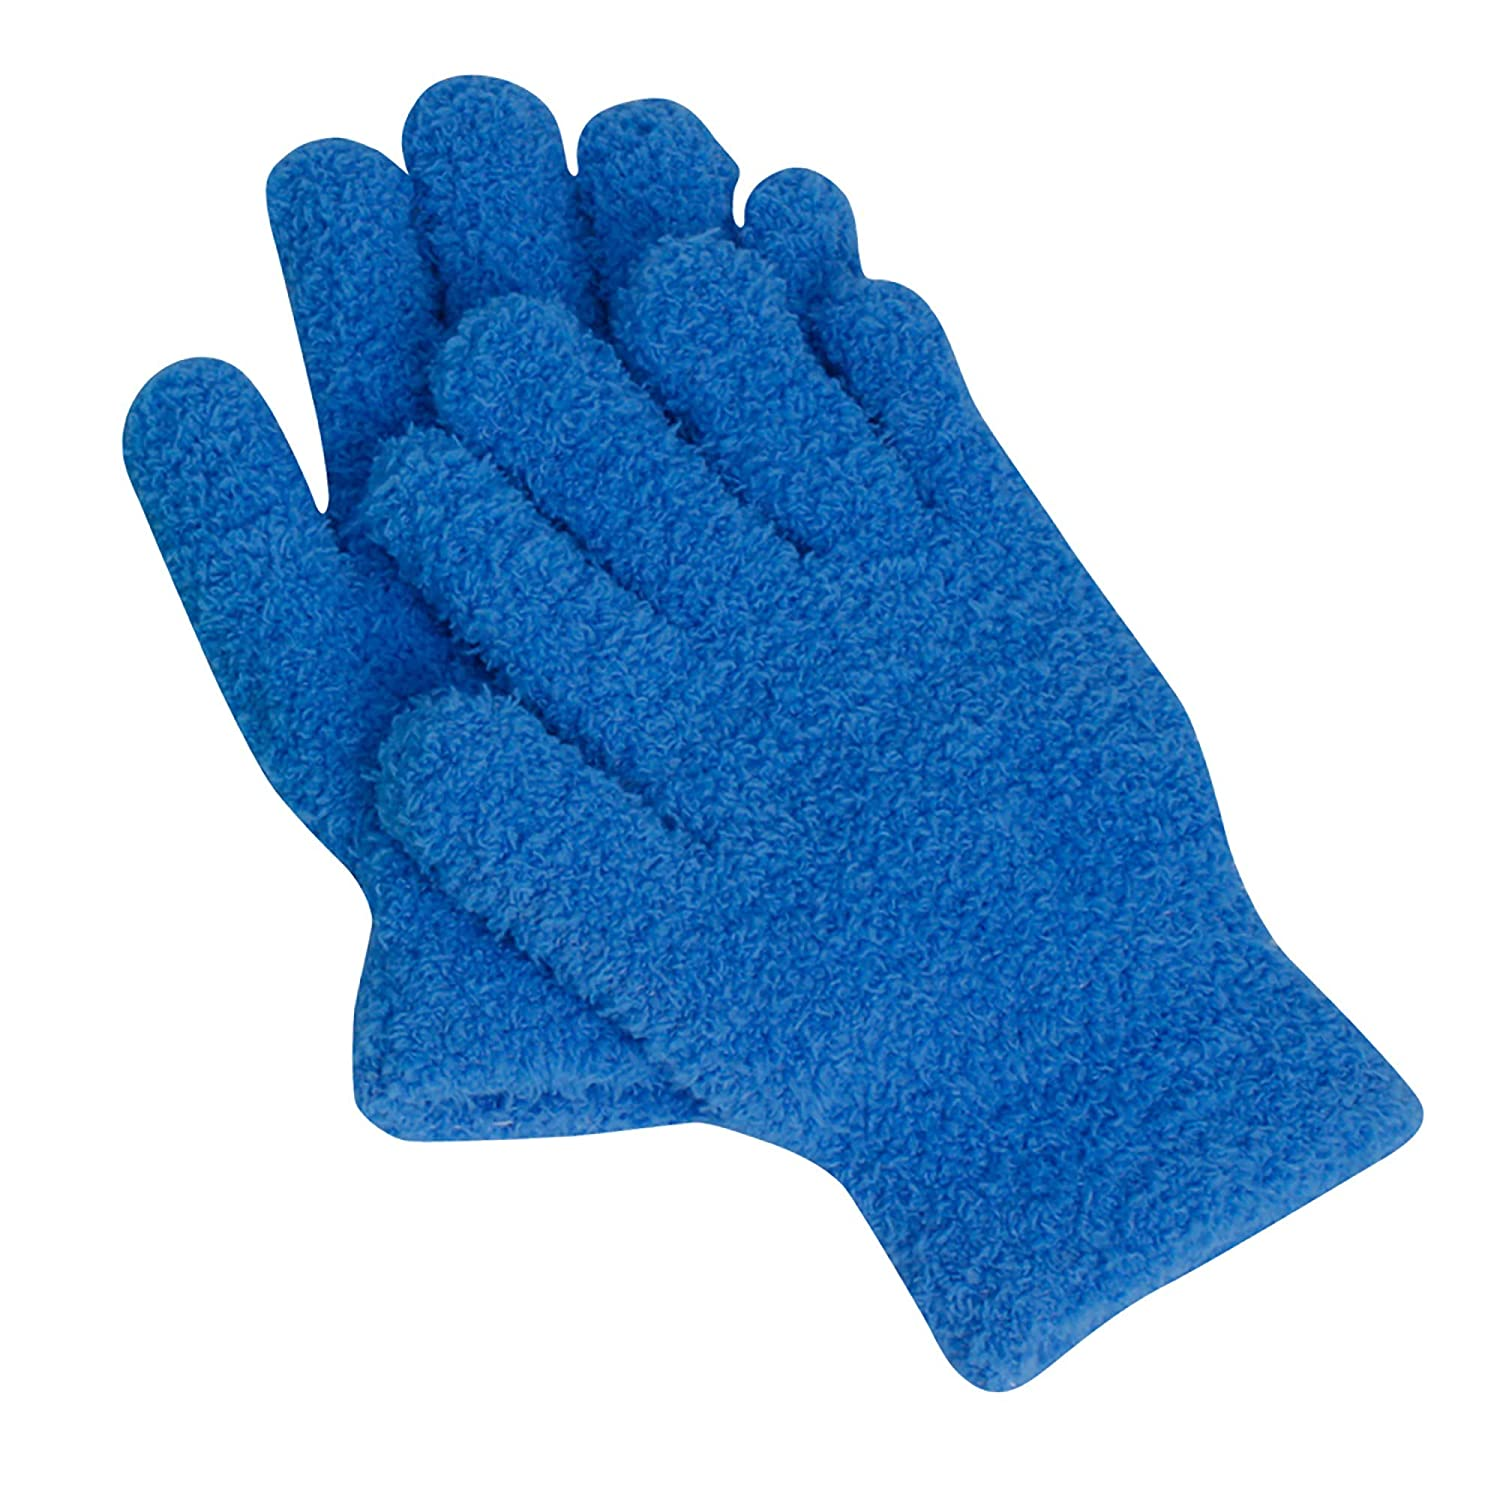 EvridWear Microfiber Auto Dusting Cleaning Gloves for Cars and Trucks, Dust Cleaning Gloves for House Cleaning,Great for Cleaning nooks and Crannies Safe to use on Any Surface! (S/M) FJDZ International Inc.